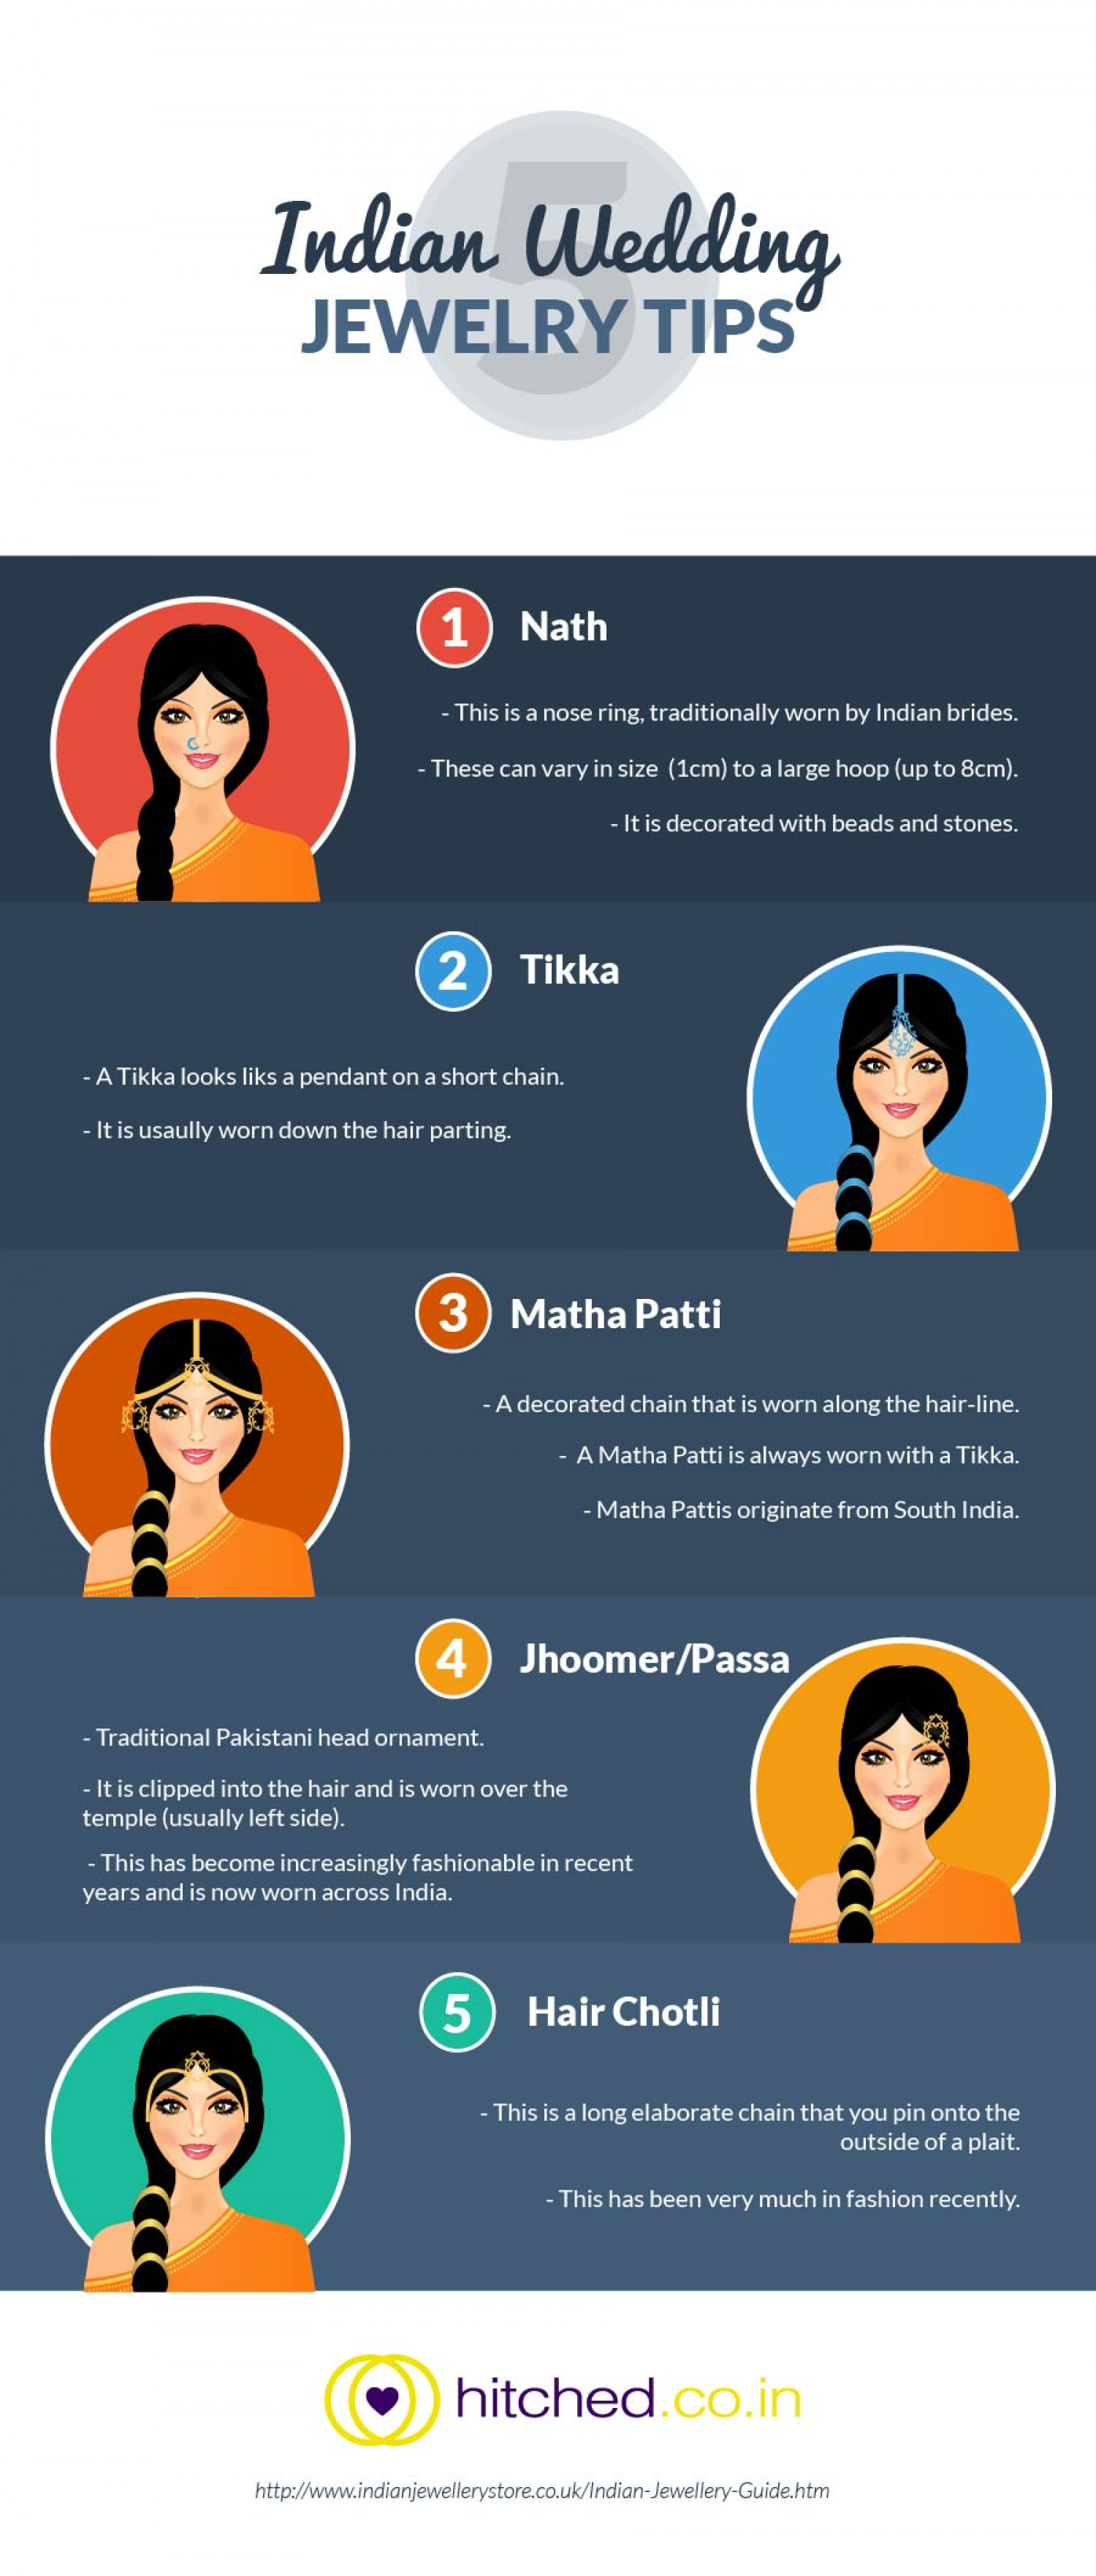 Indian Wedding Jewelry Tips Infographic